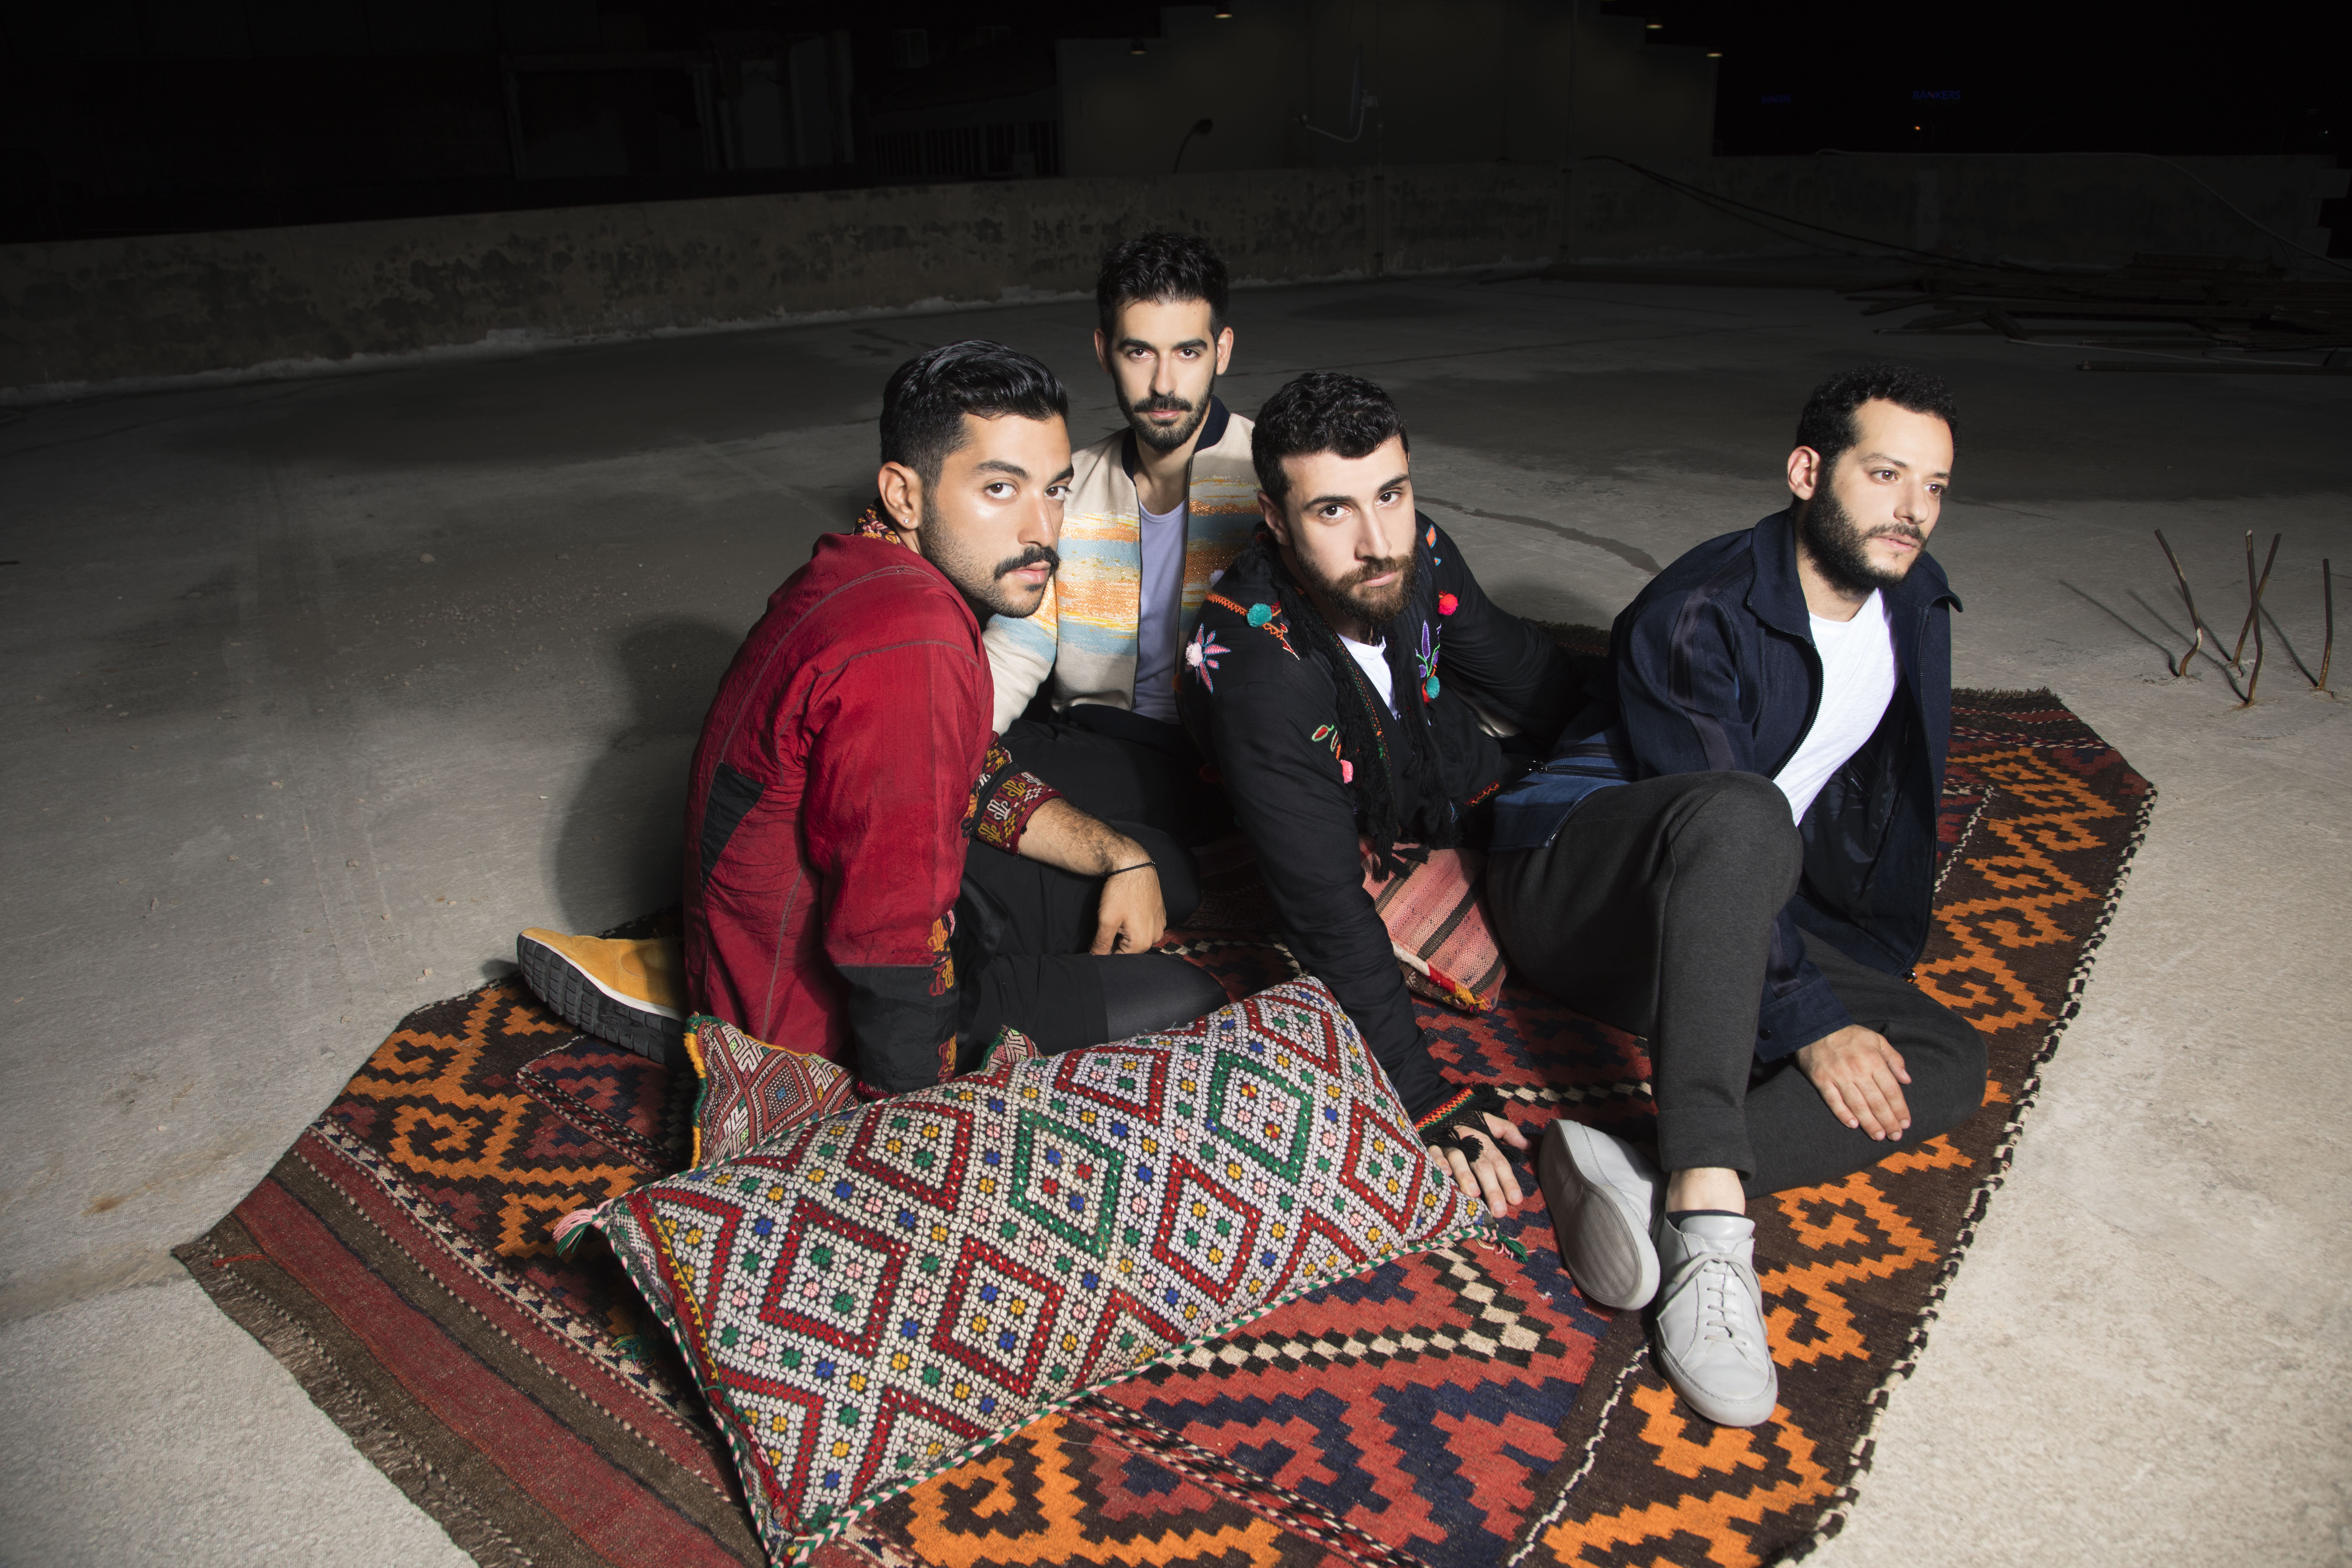 What it's Like to Be an LGBT Band in the Middle East